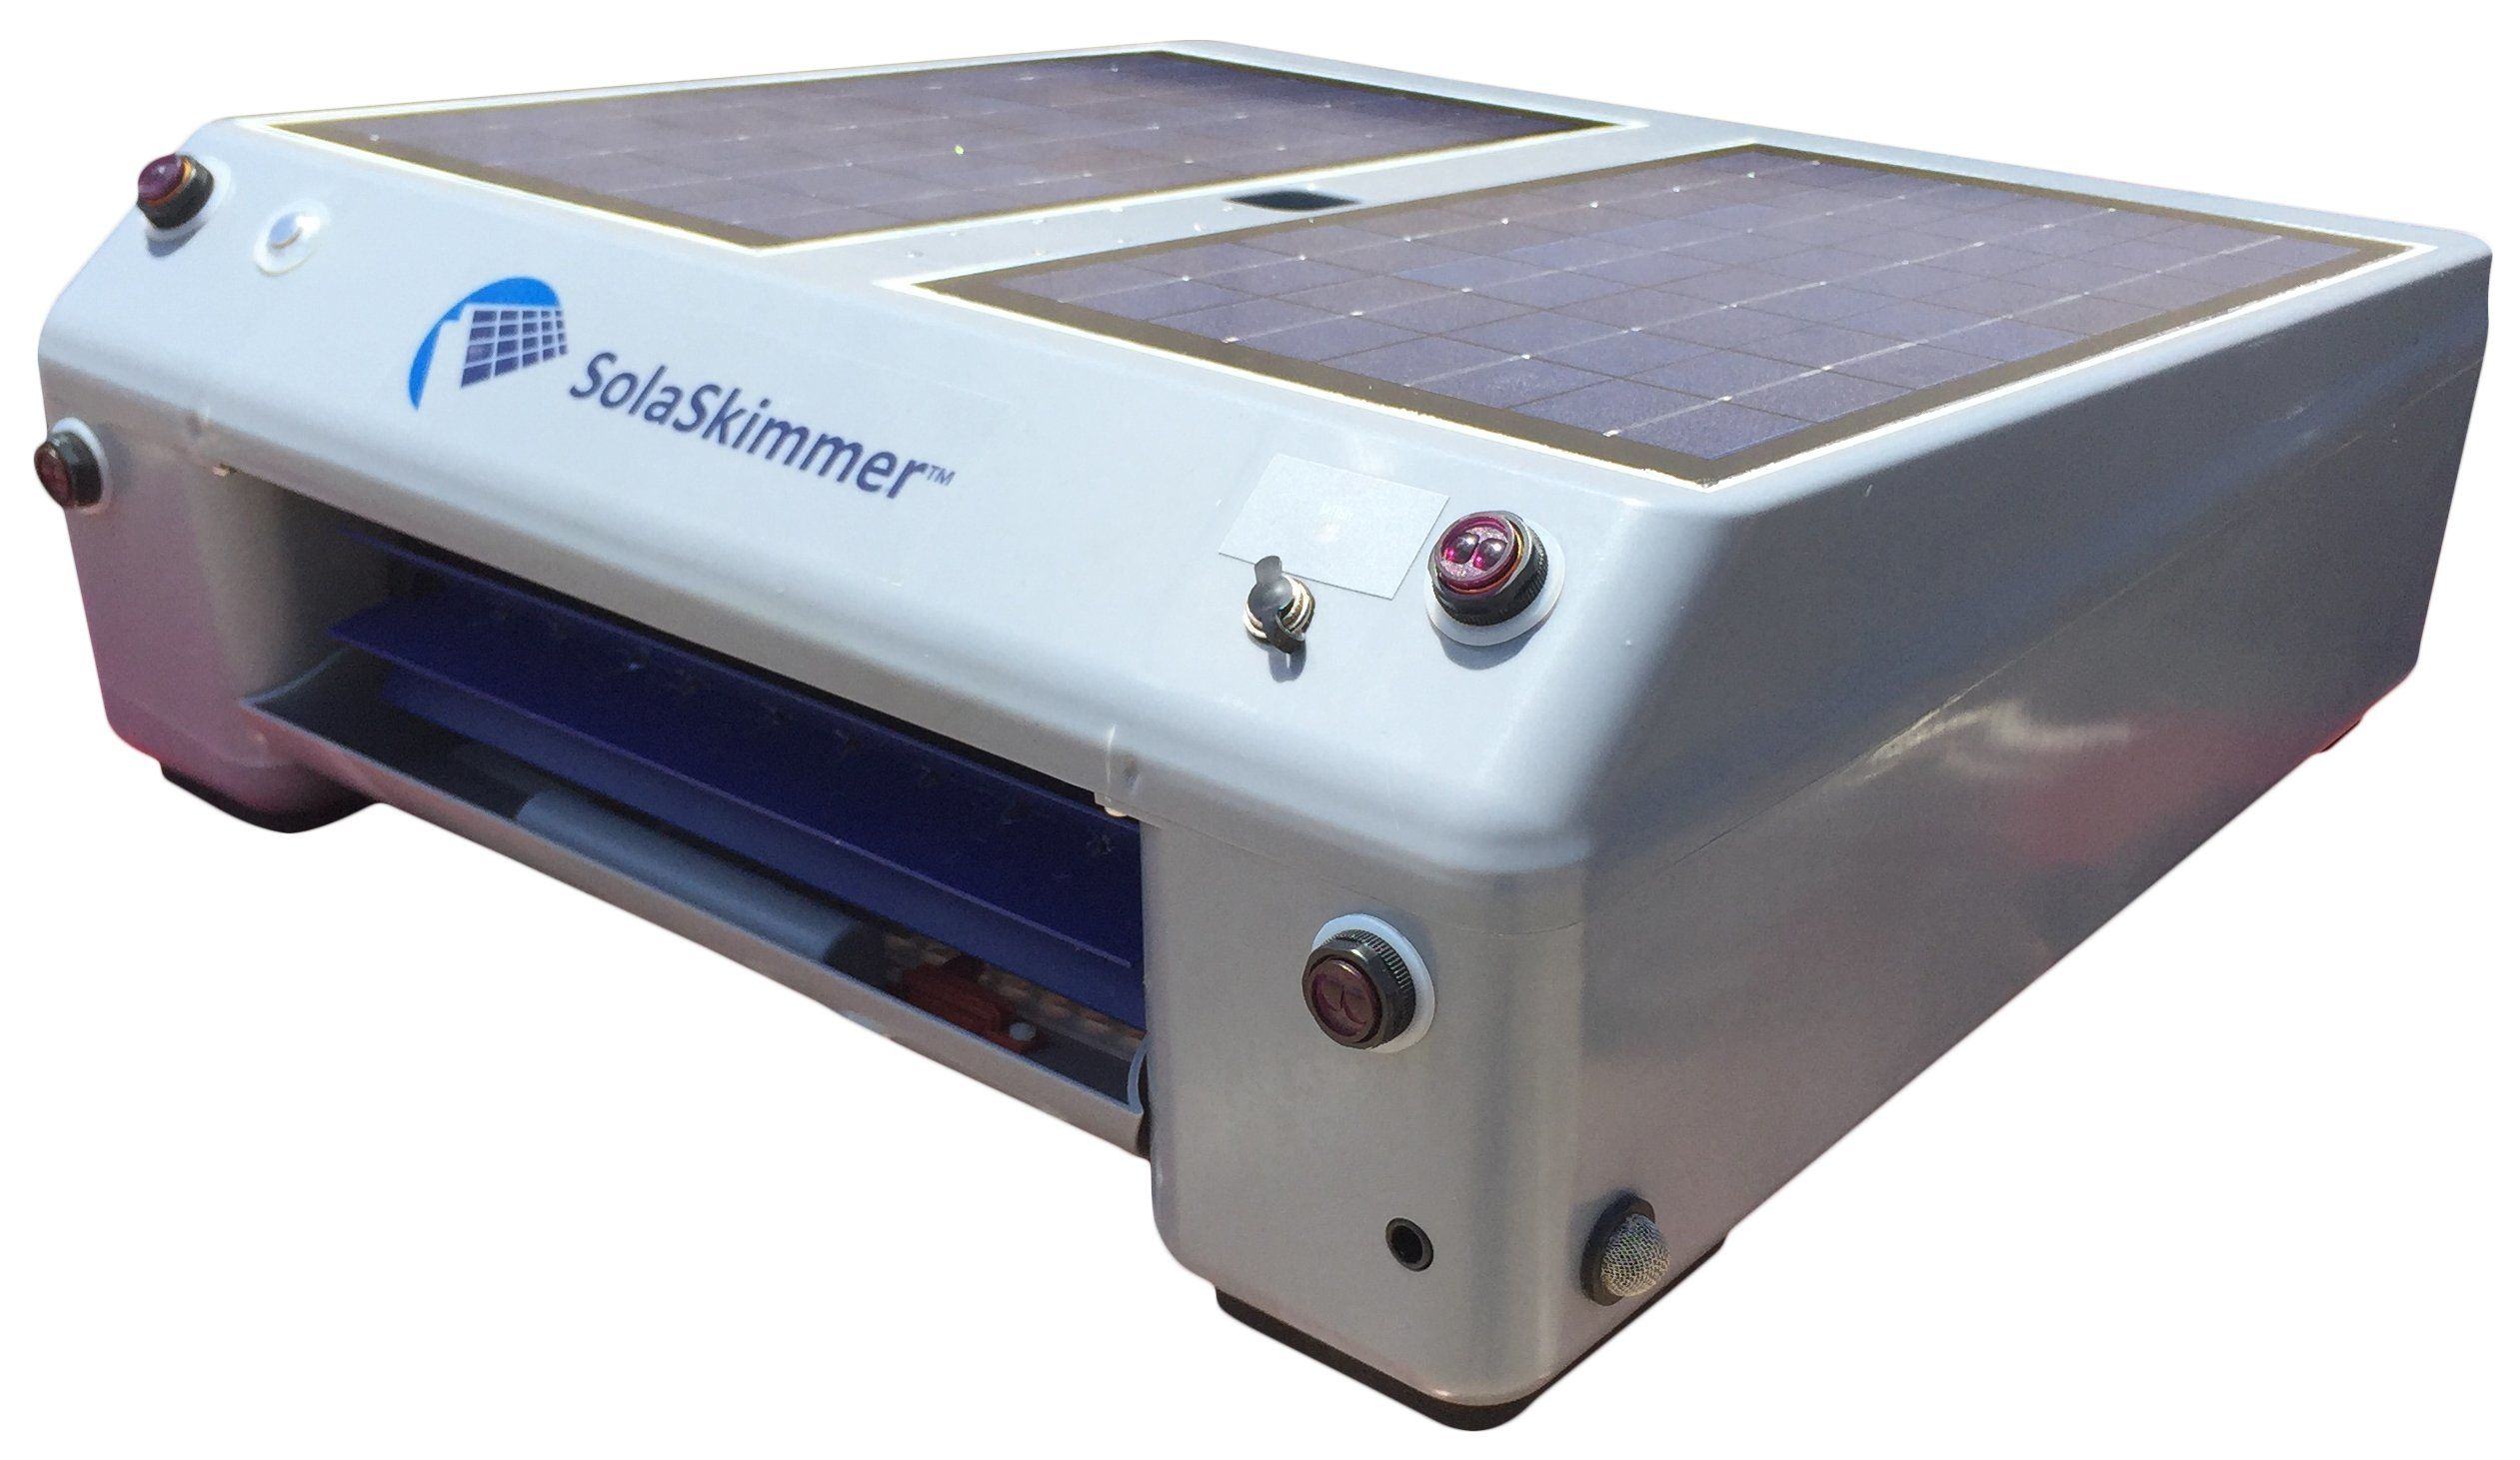 Pool Solarplane 4 X 8 Solaskimmer Solar Powered Swimming Pool Skimmer